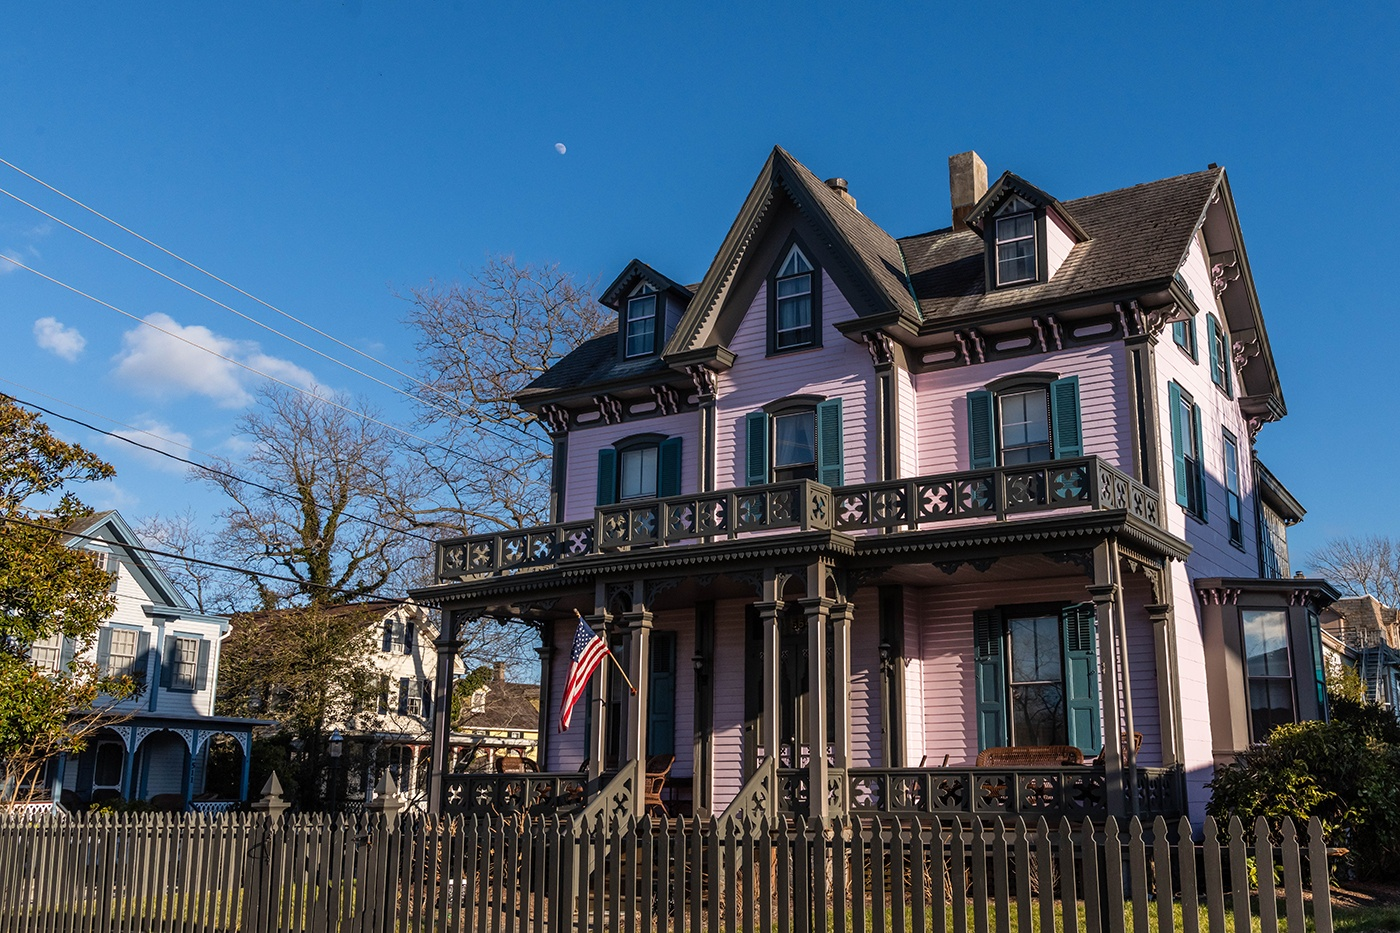 A pink and teal Victorian house on a sunny winter day with a clear blue sky